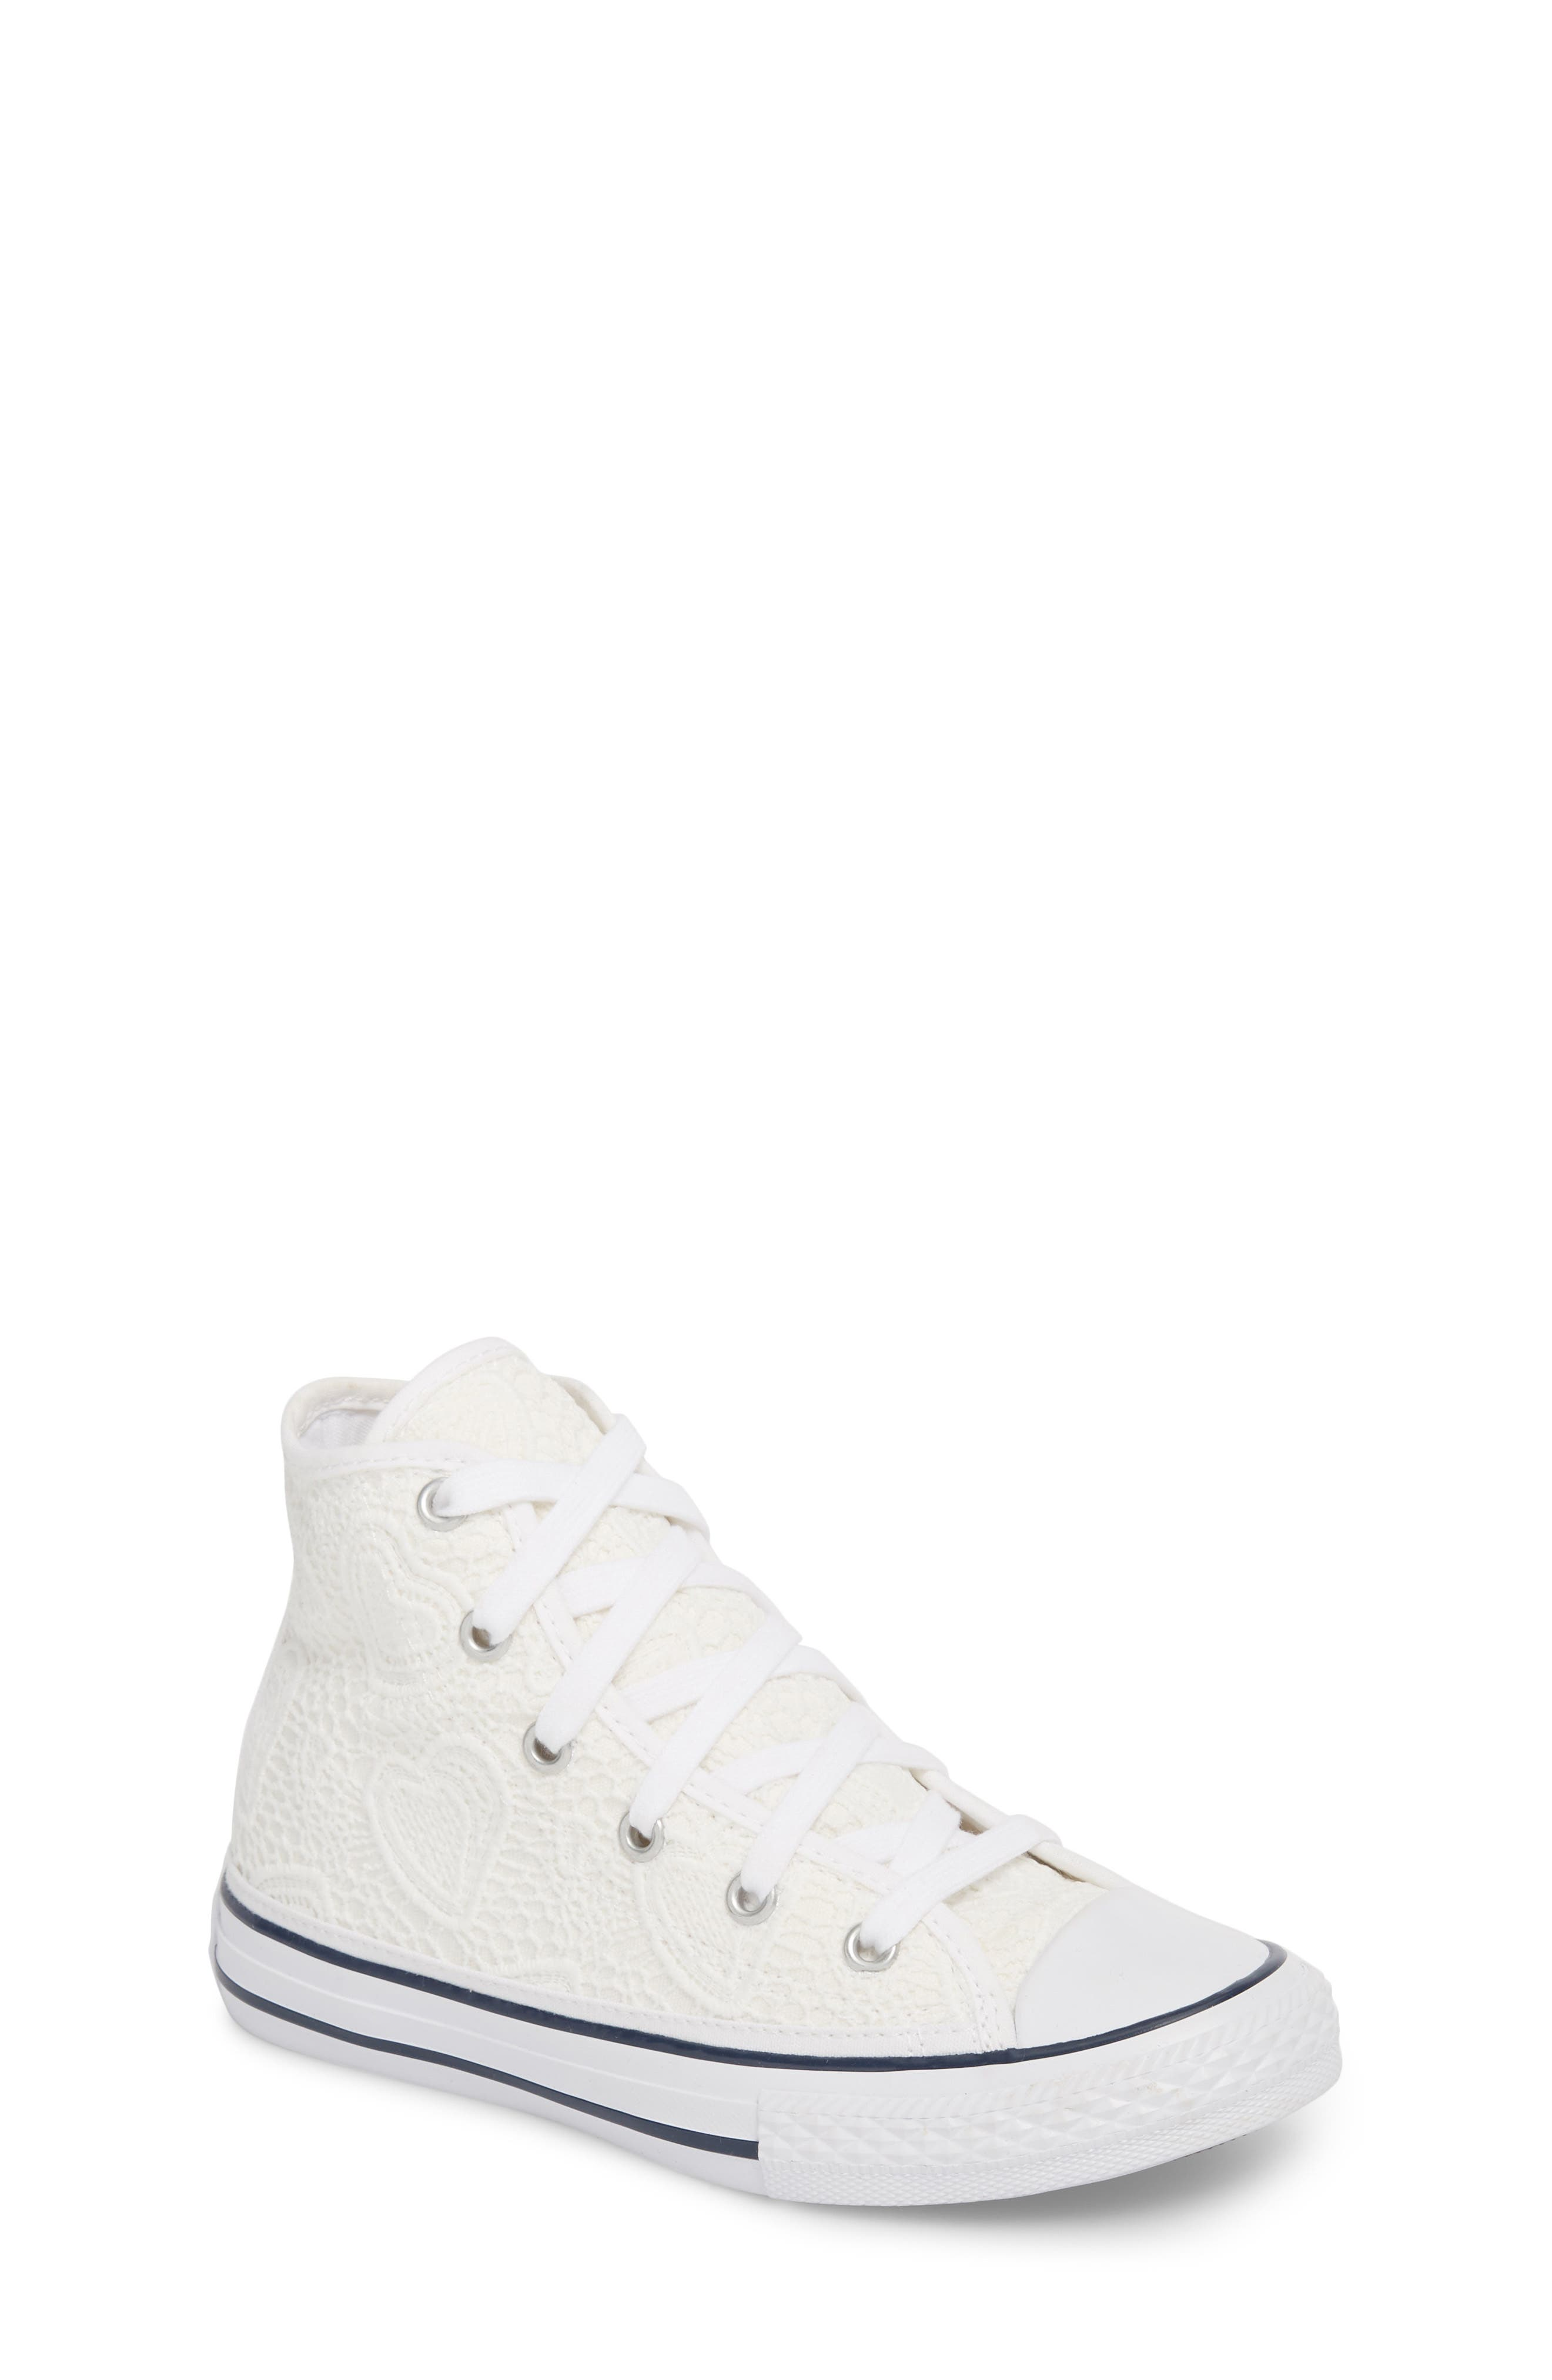 Chuck Taylor<sup>®</sup> All Star<sup>®</sup> Crochet High Top Sneaker,                         Main,                         color, White